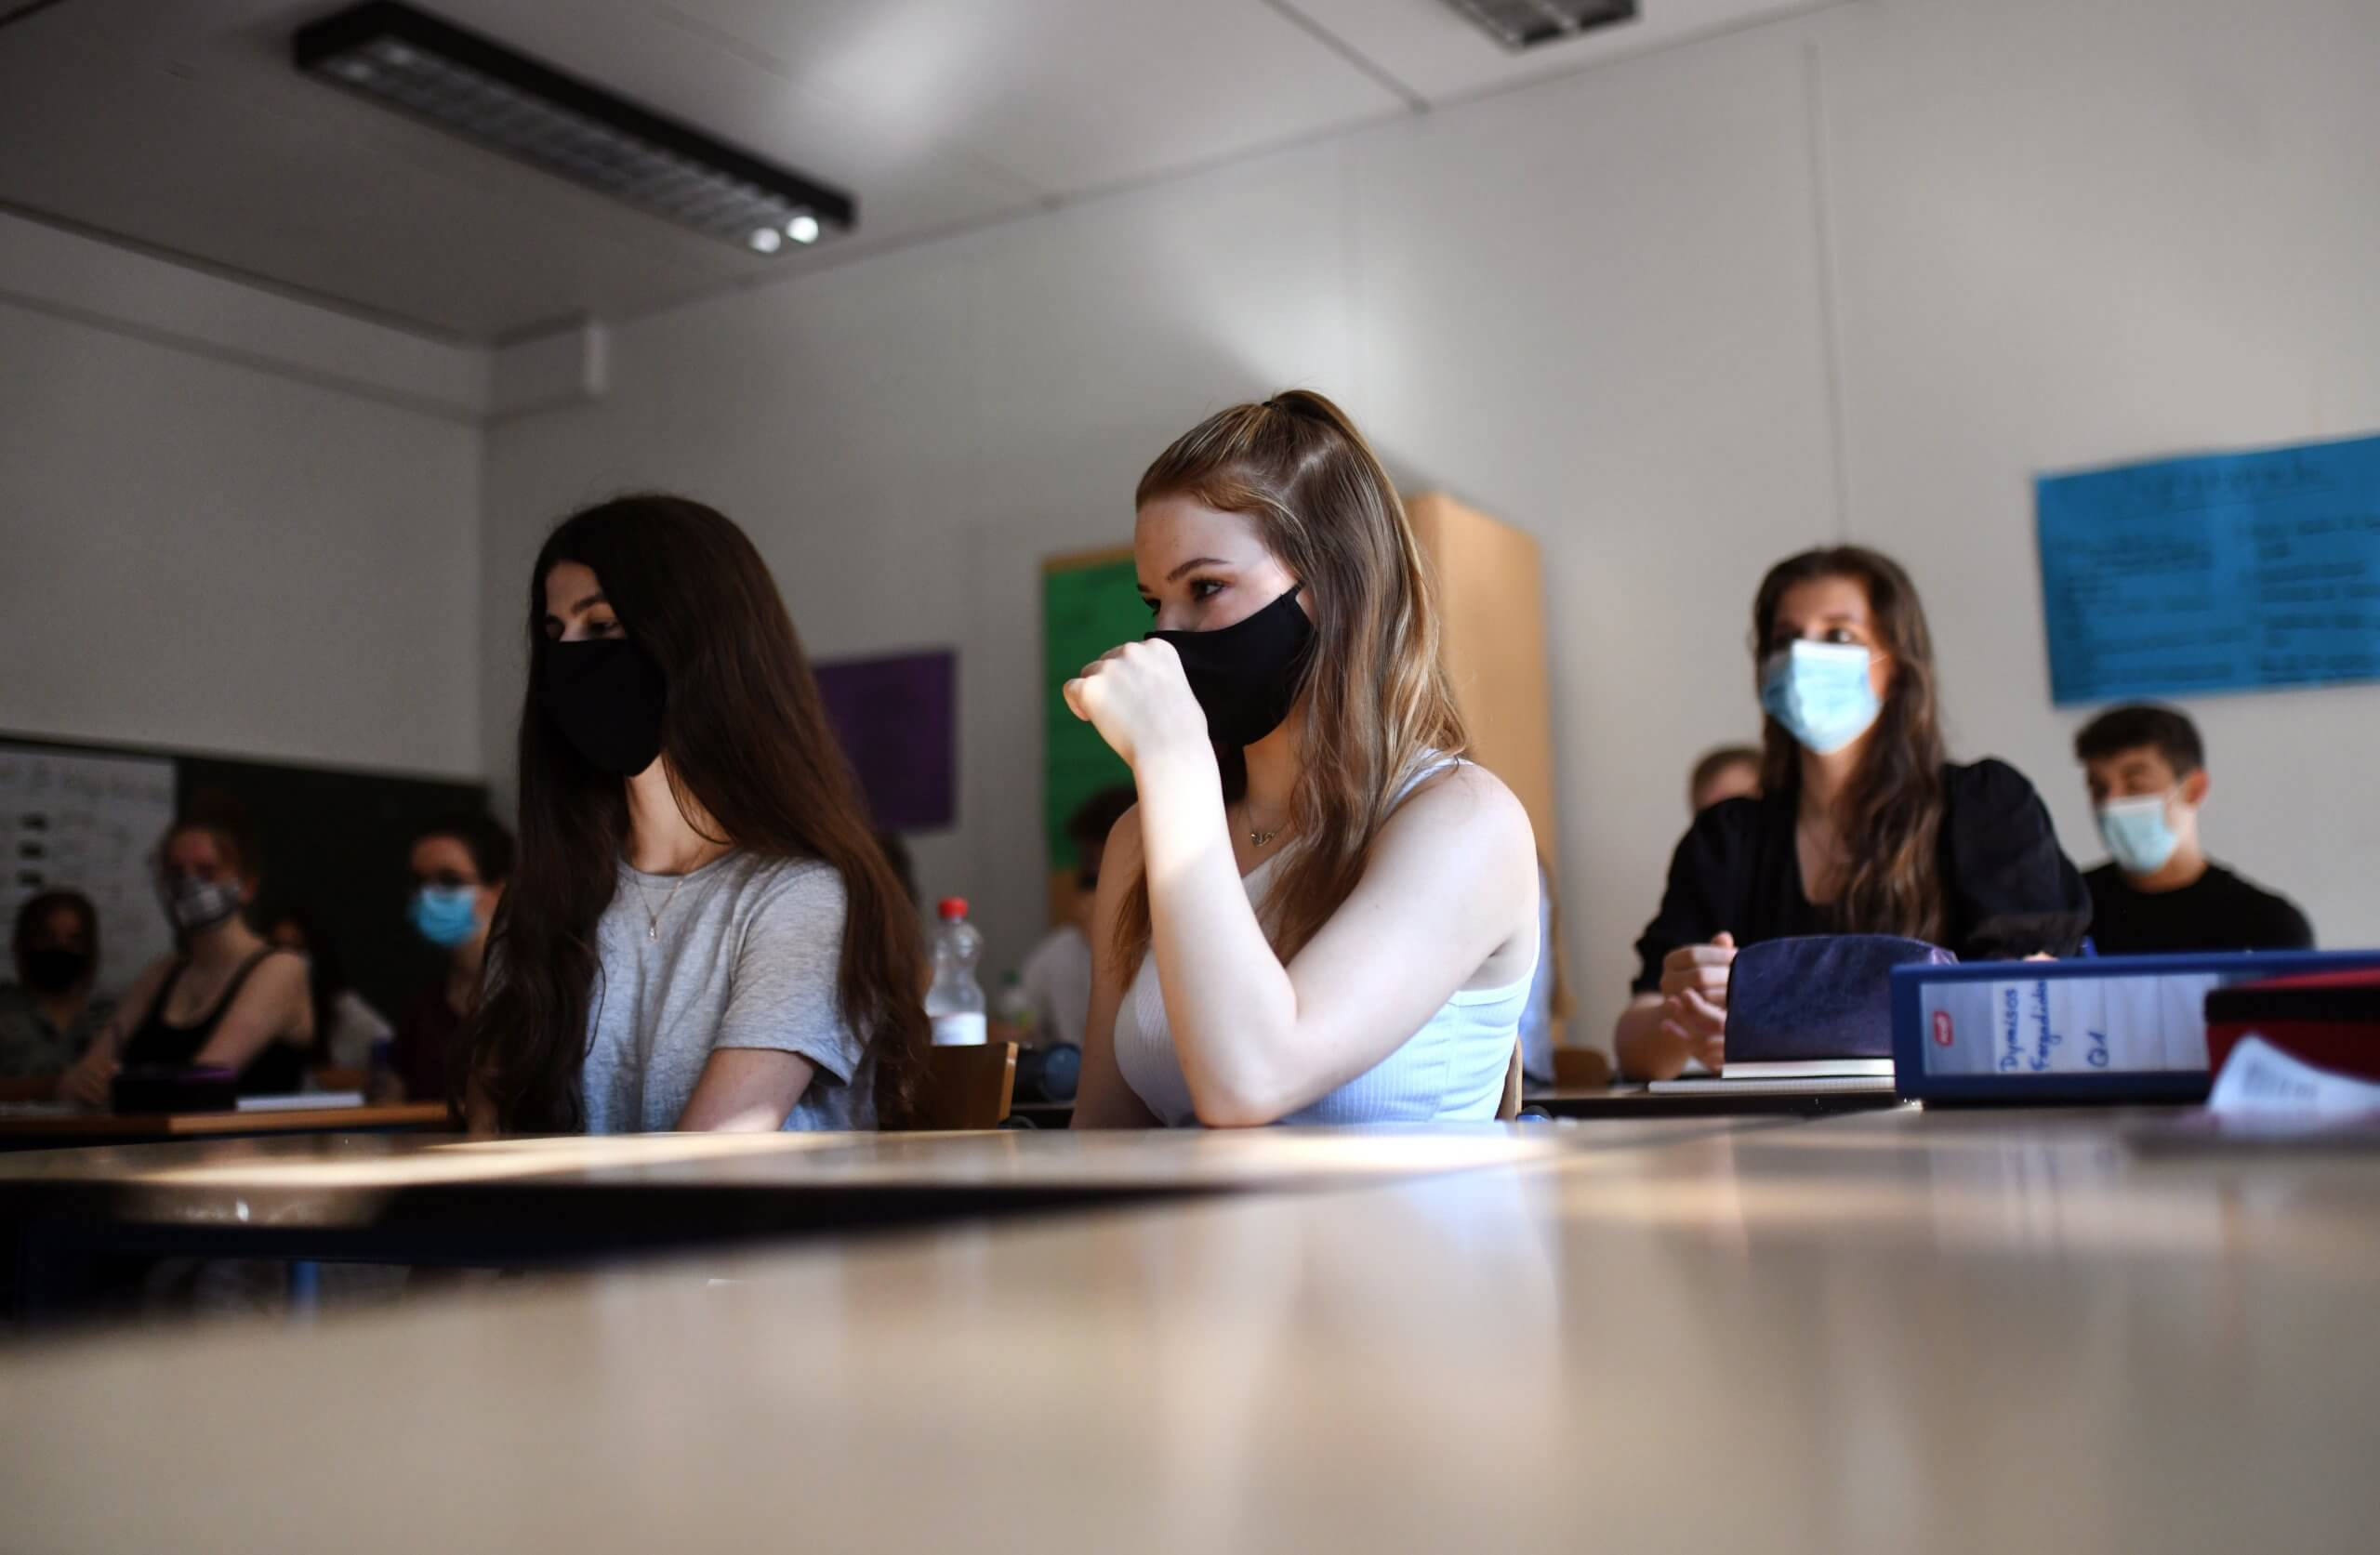 Germany will not issue visas to online-only students